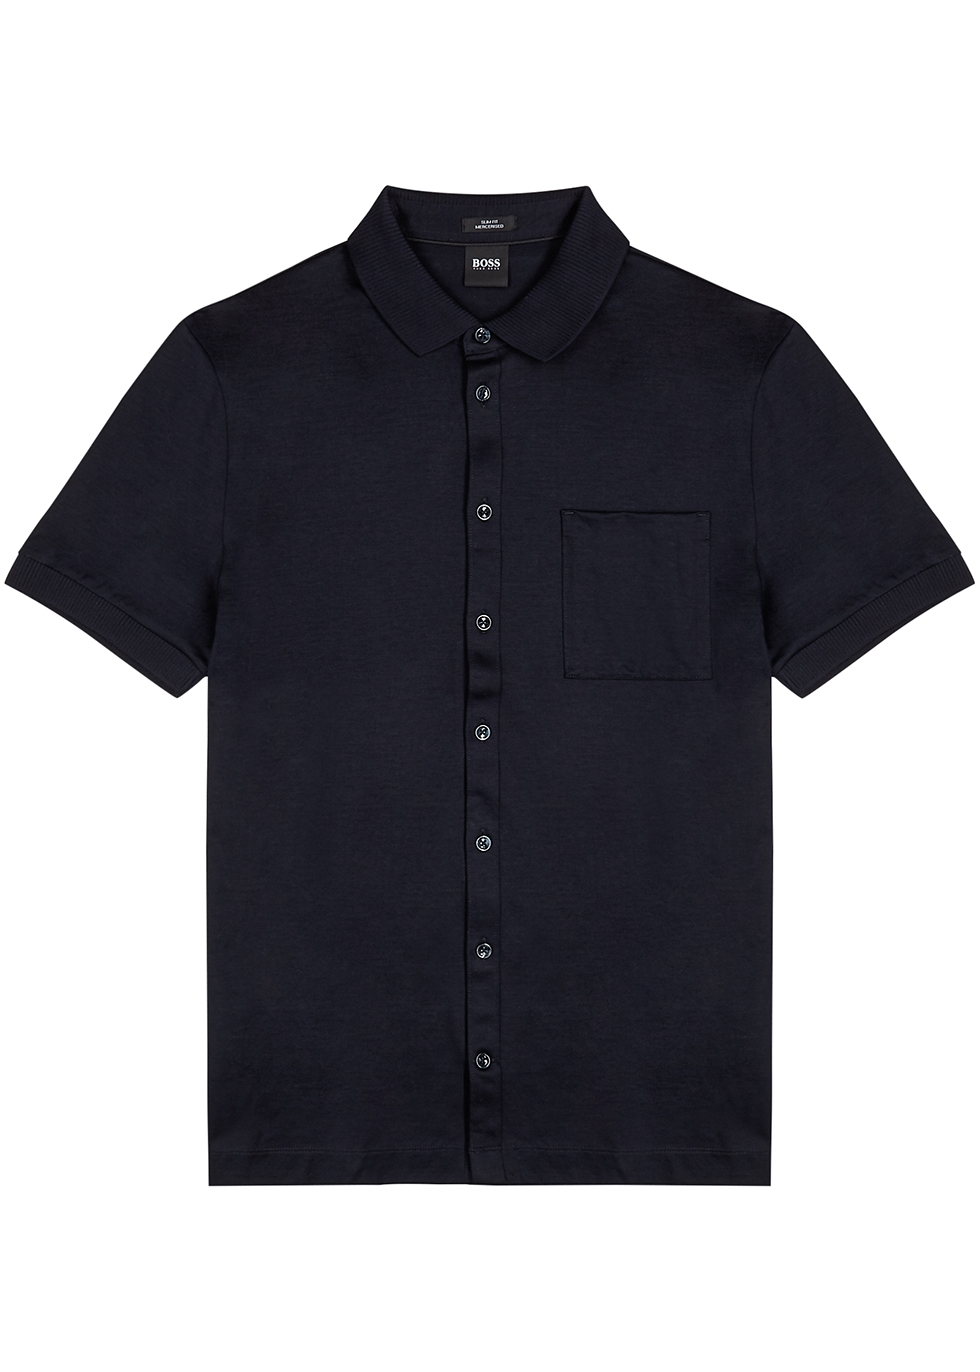 Puno navy cotton shirt